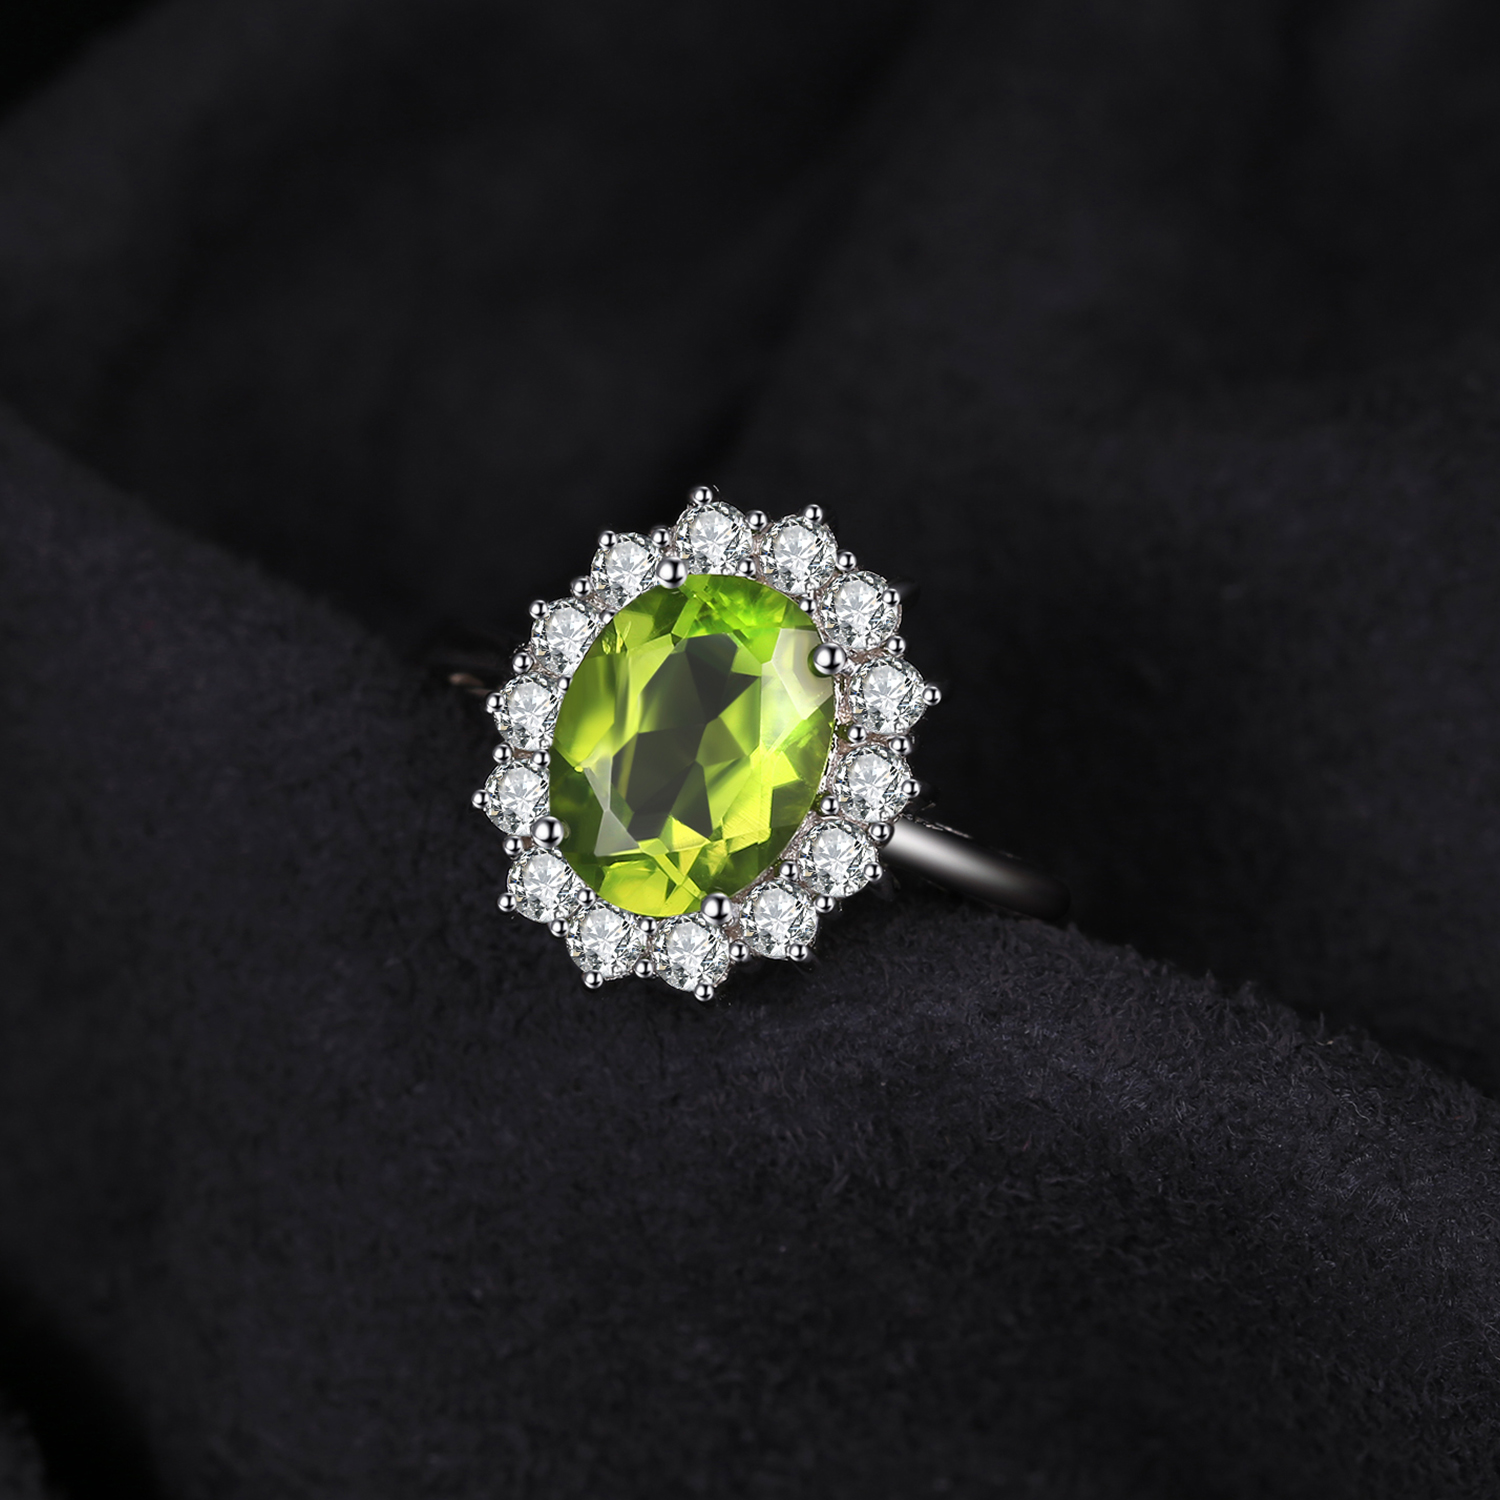 Image 2 - JewPalace Princess Diana Genuine Peridot Ring 925 Sterling Silver